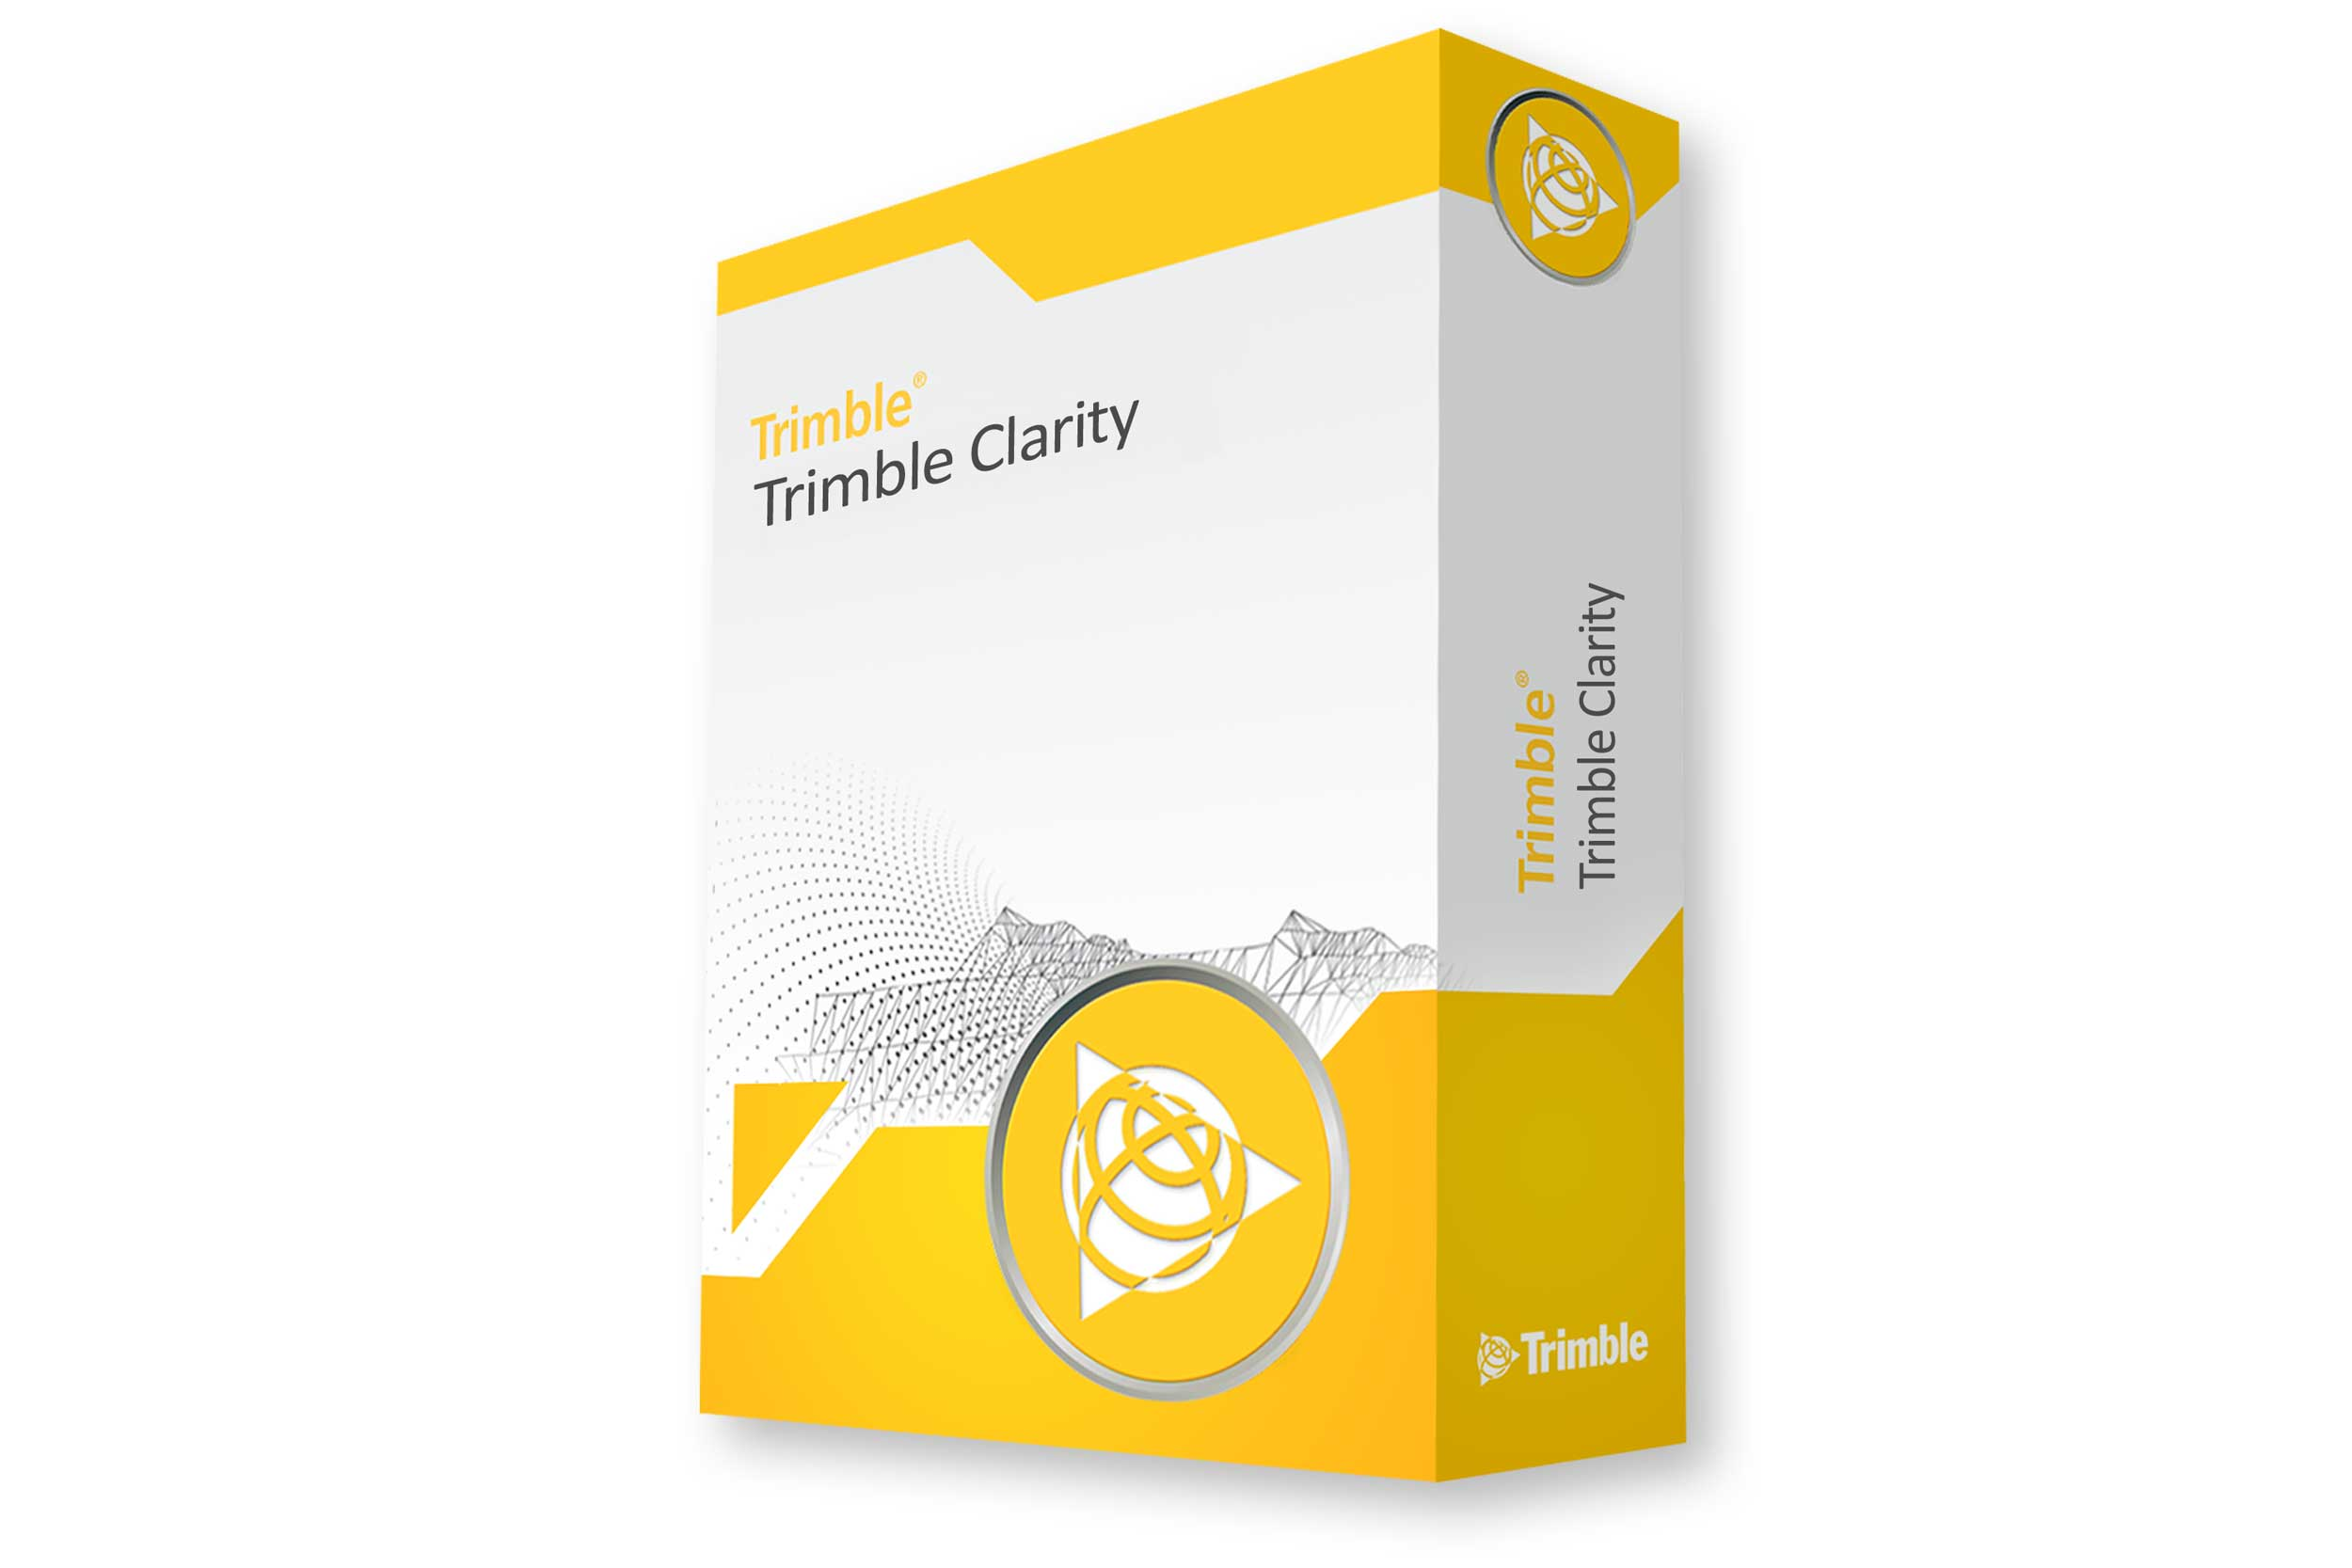 Bürosoftware Trimble Clarity